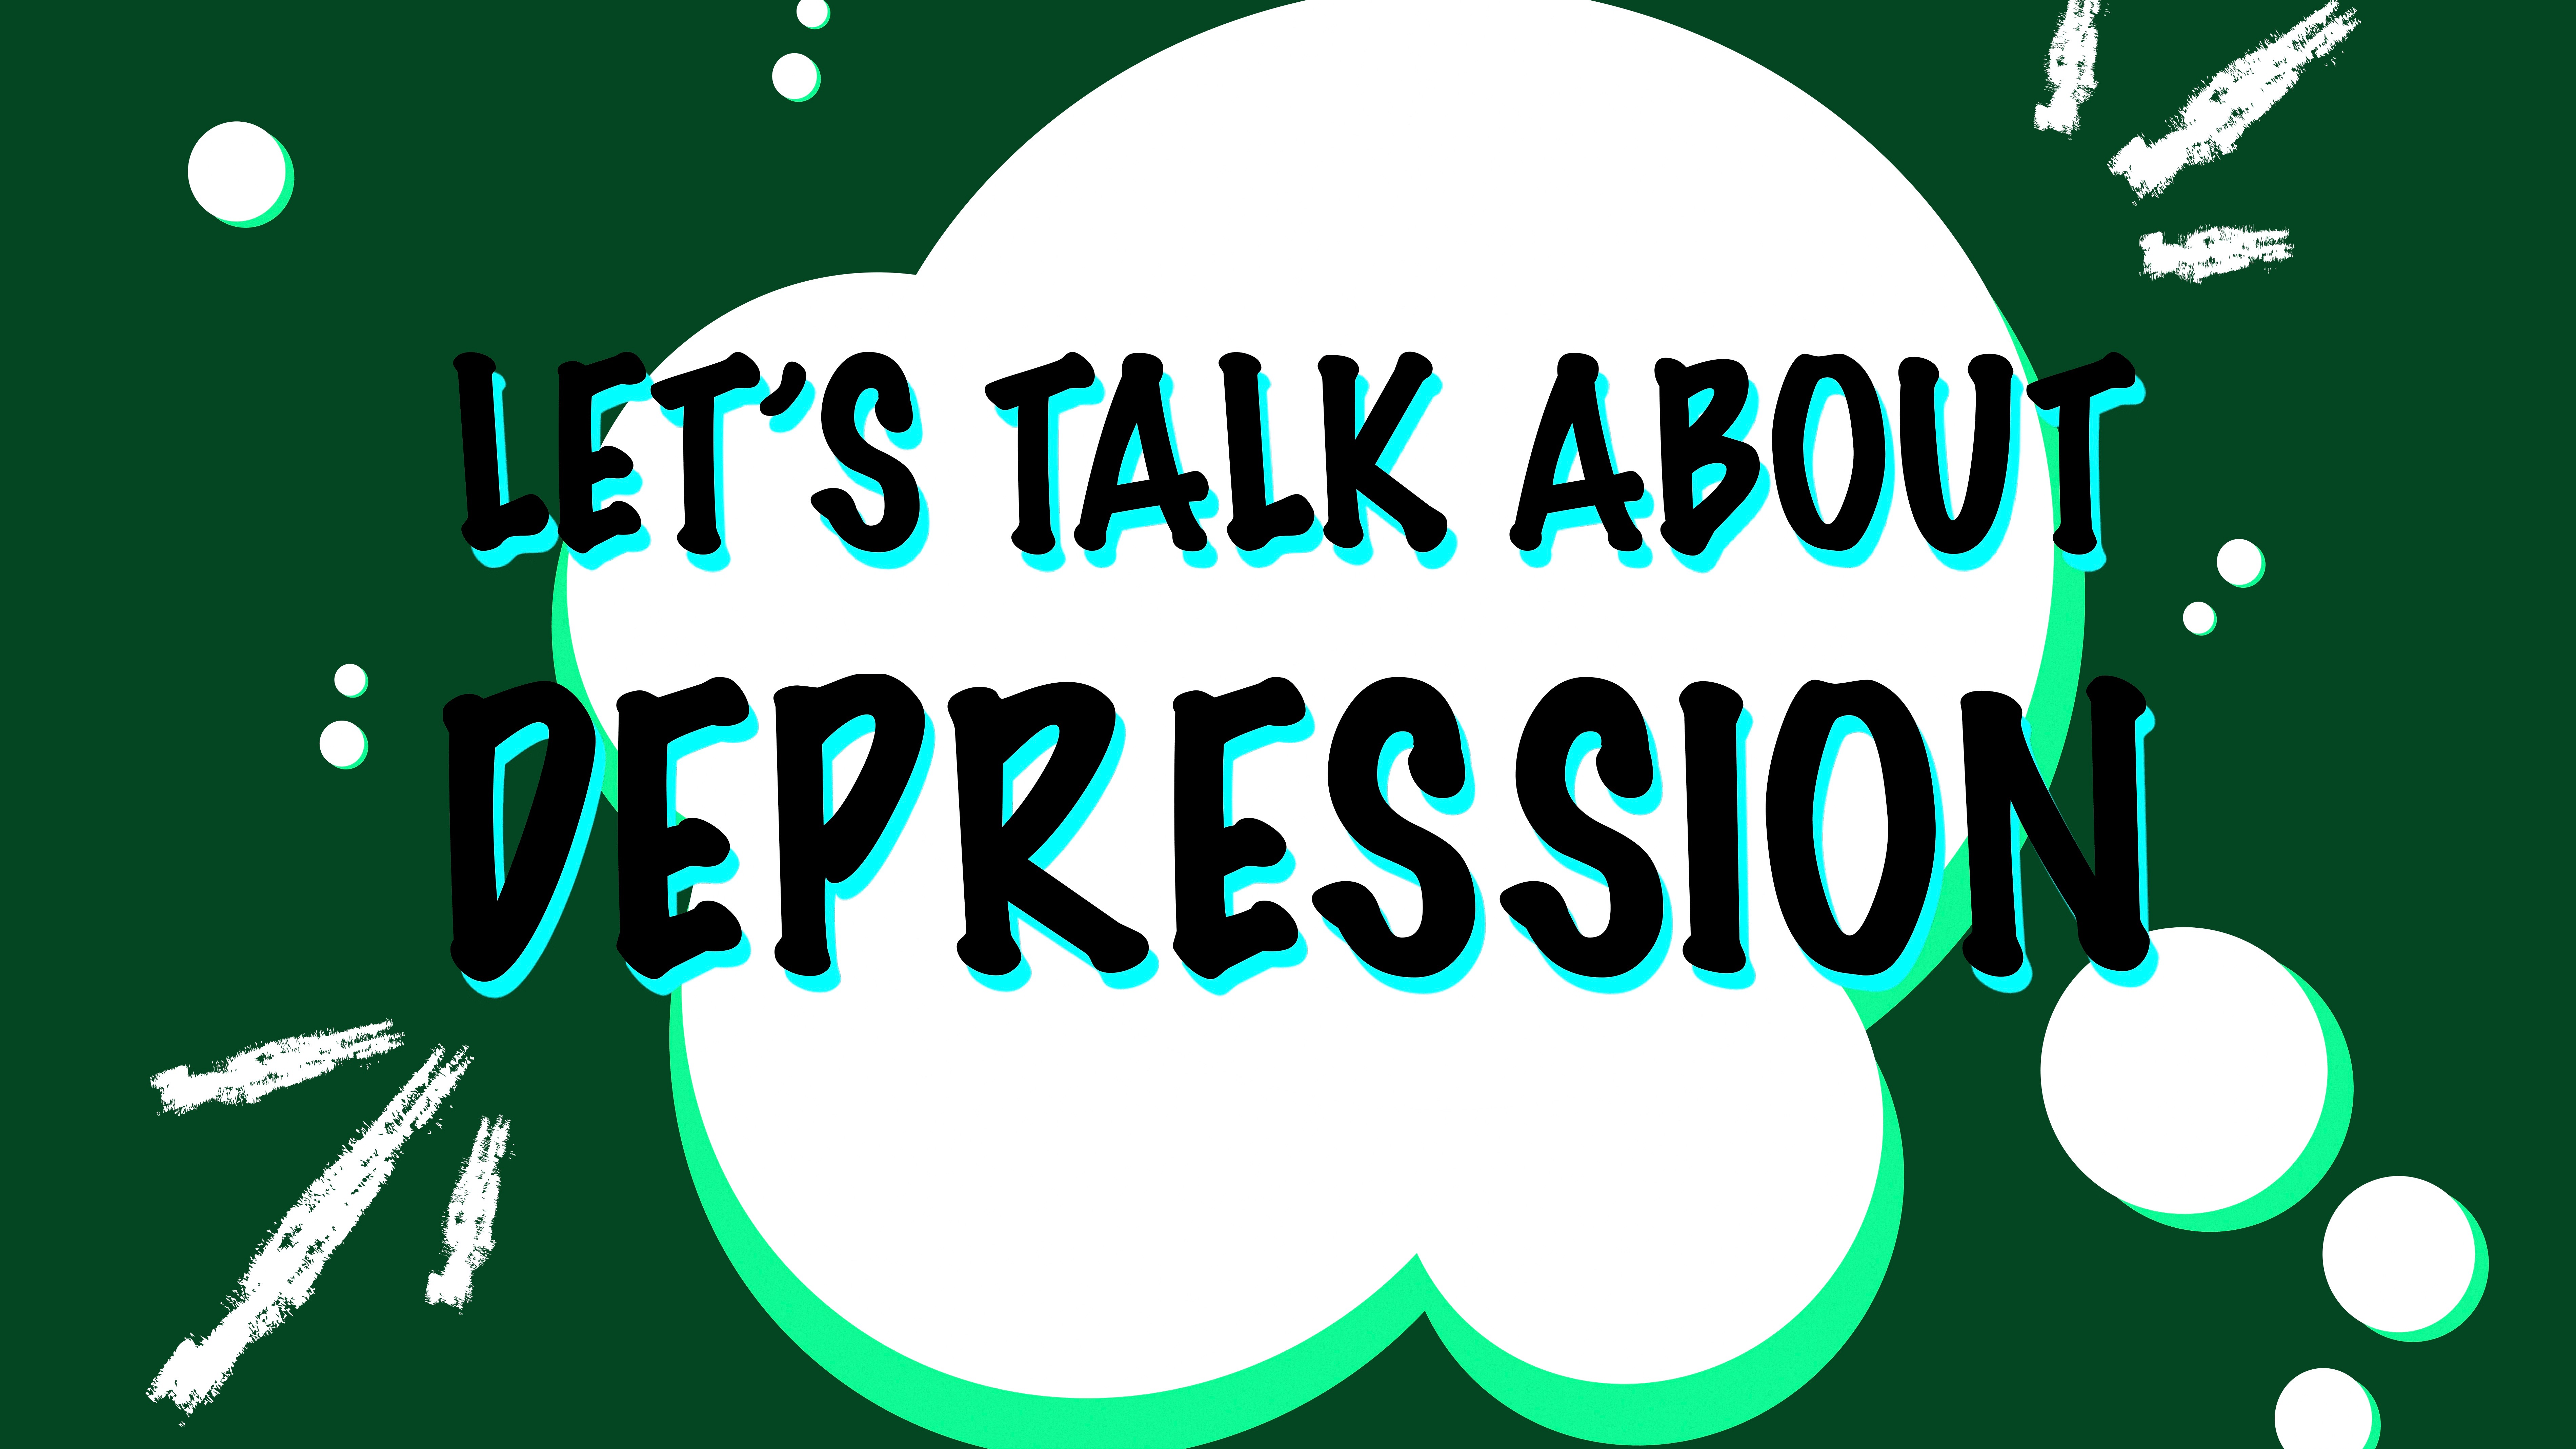 Let's Talk About... Depression | The Life Church